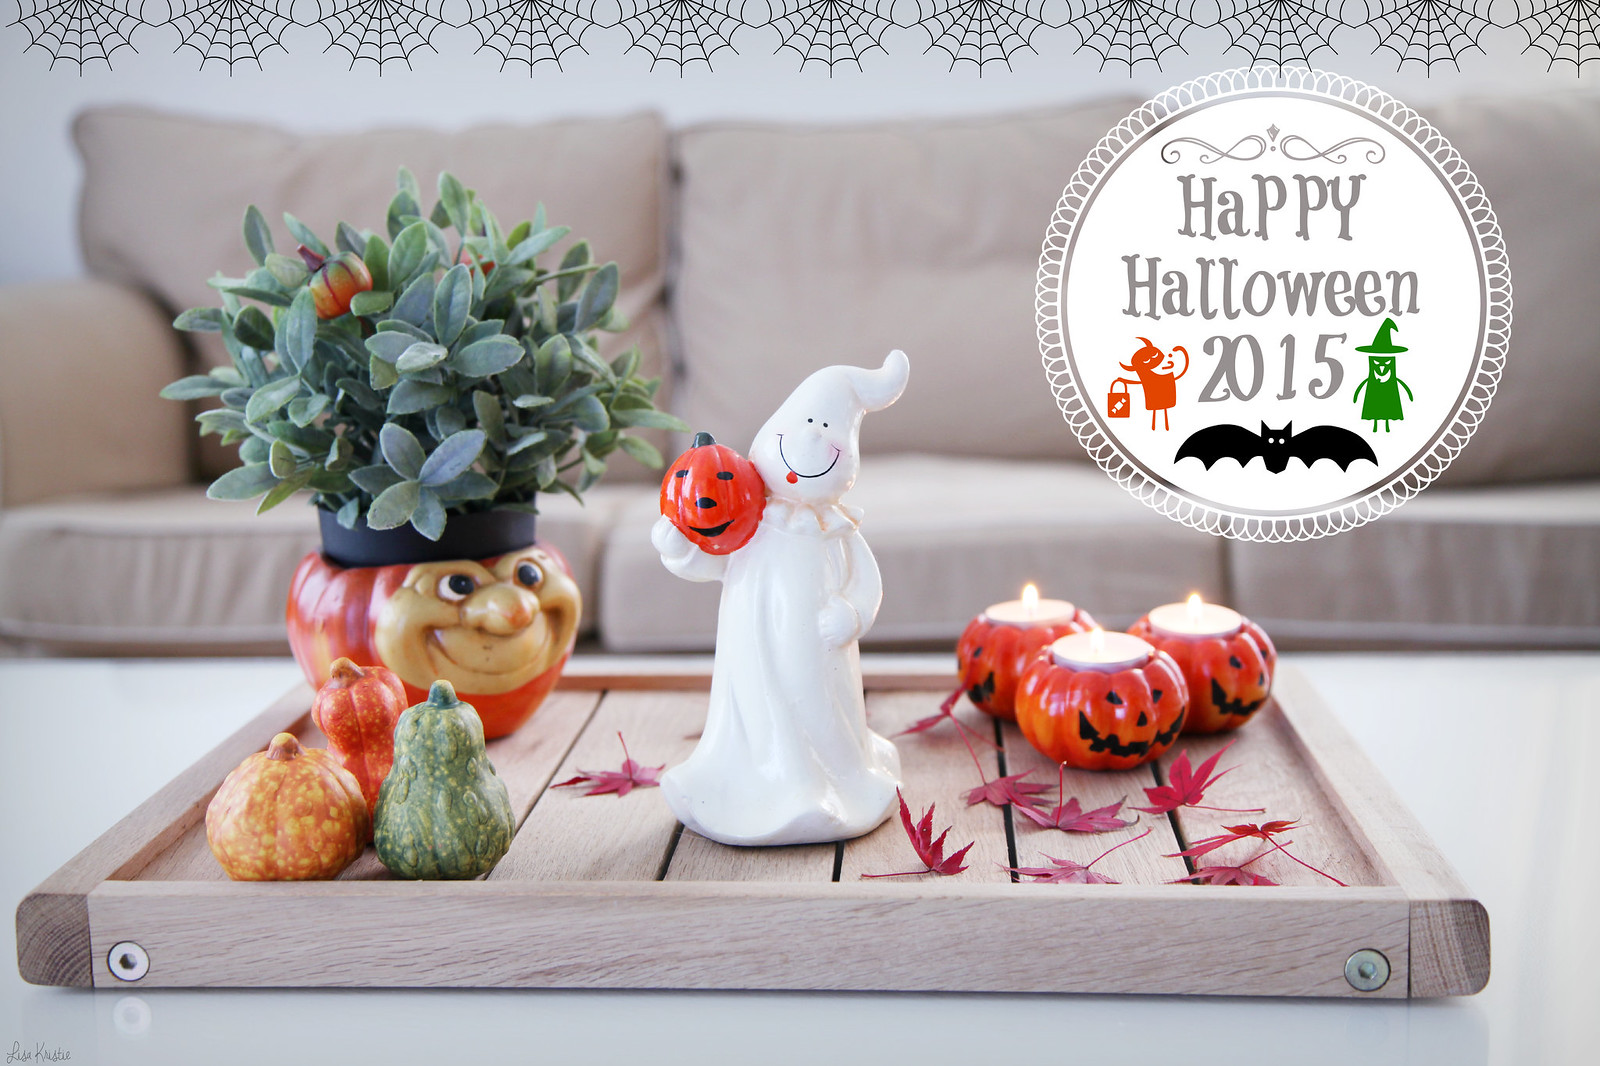 Halloween pumpkins ghost decoration coffee table tray living room area couch candle holders tea lights statue plant fake home indoor interior decor style